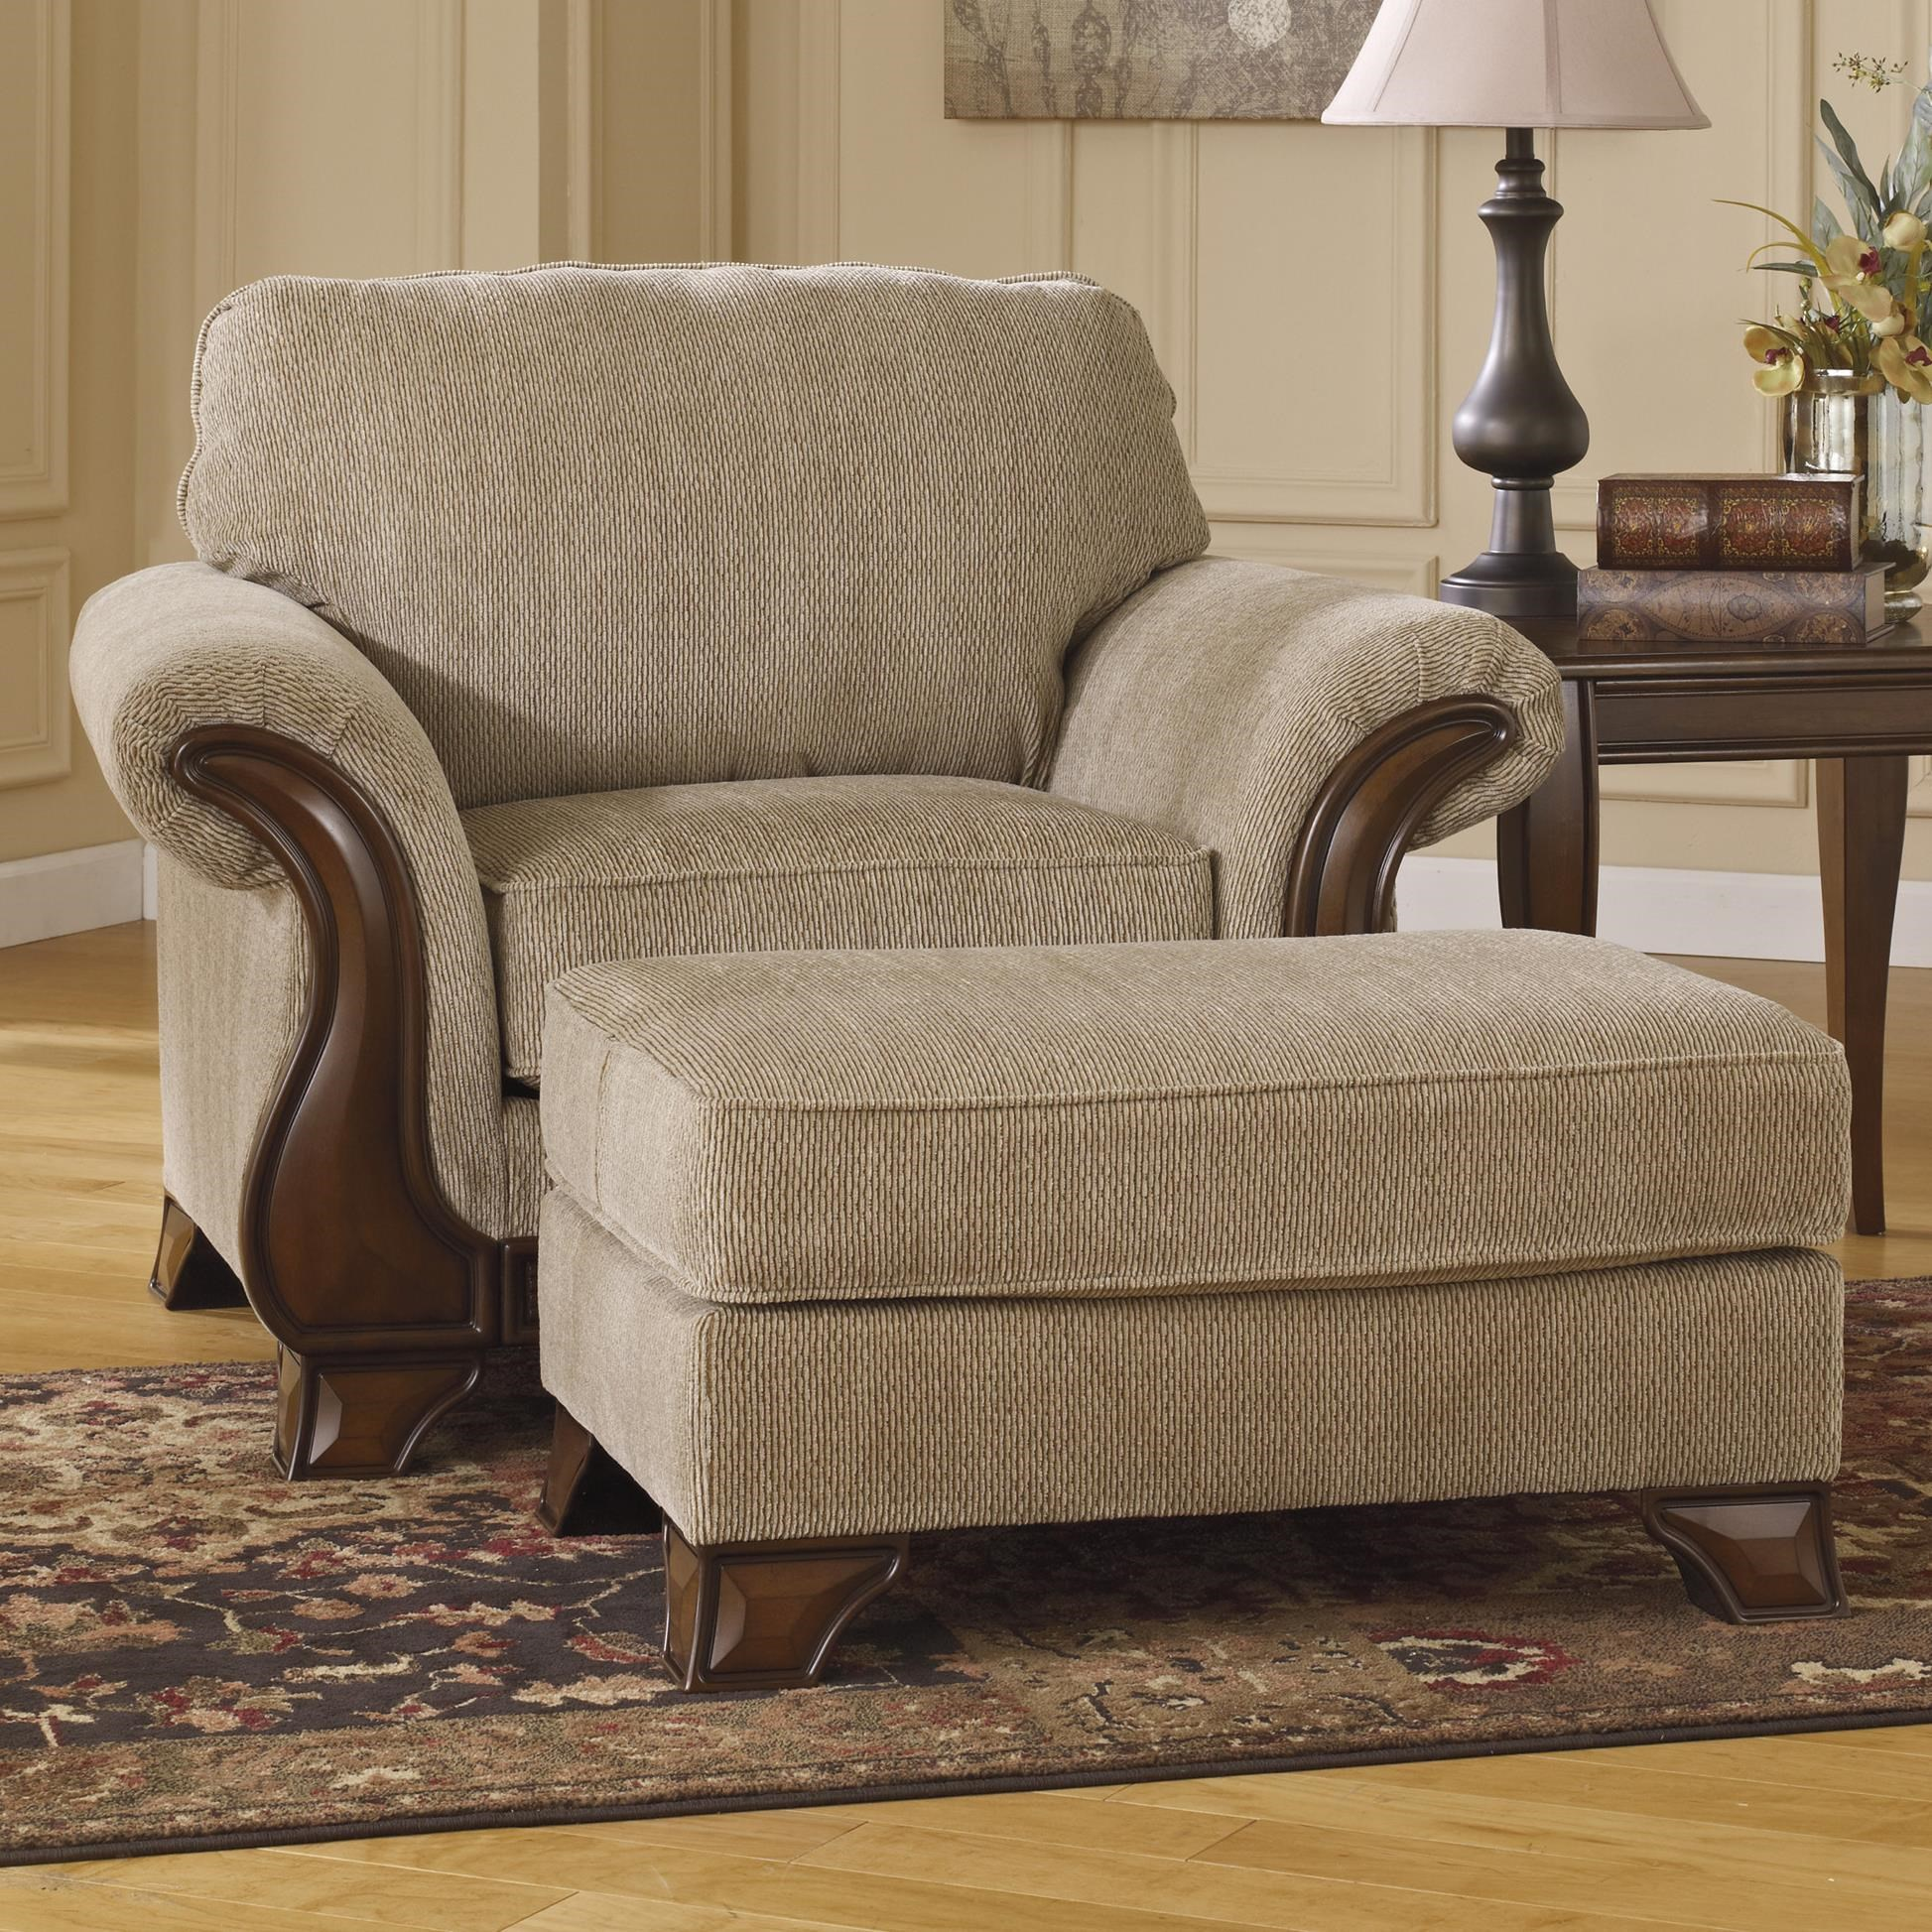 Chair & Ottoman with Faux Wood Accents